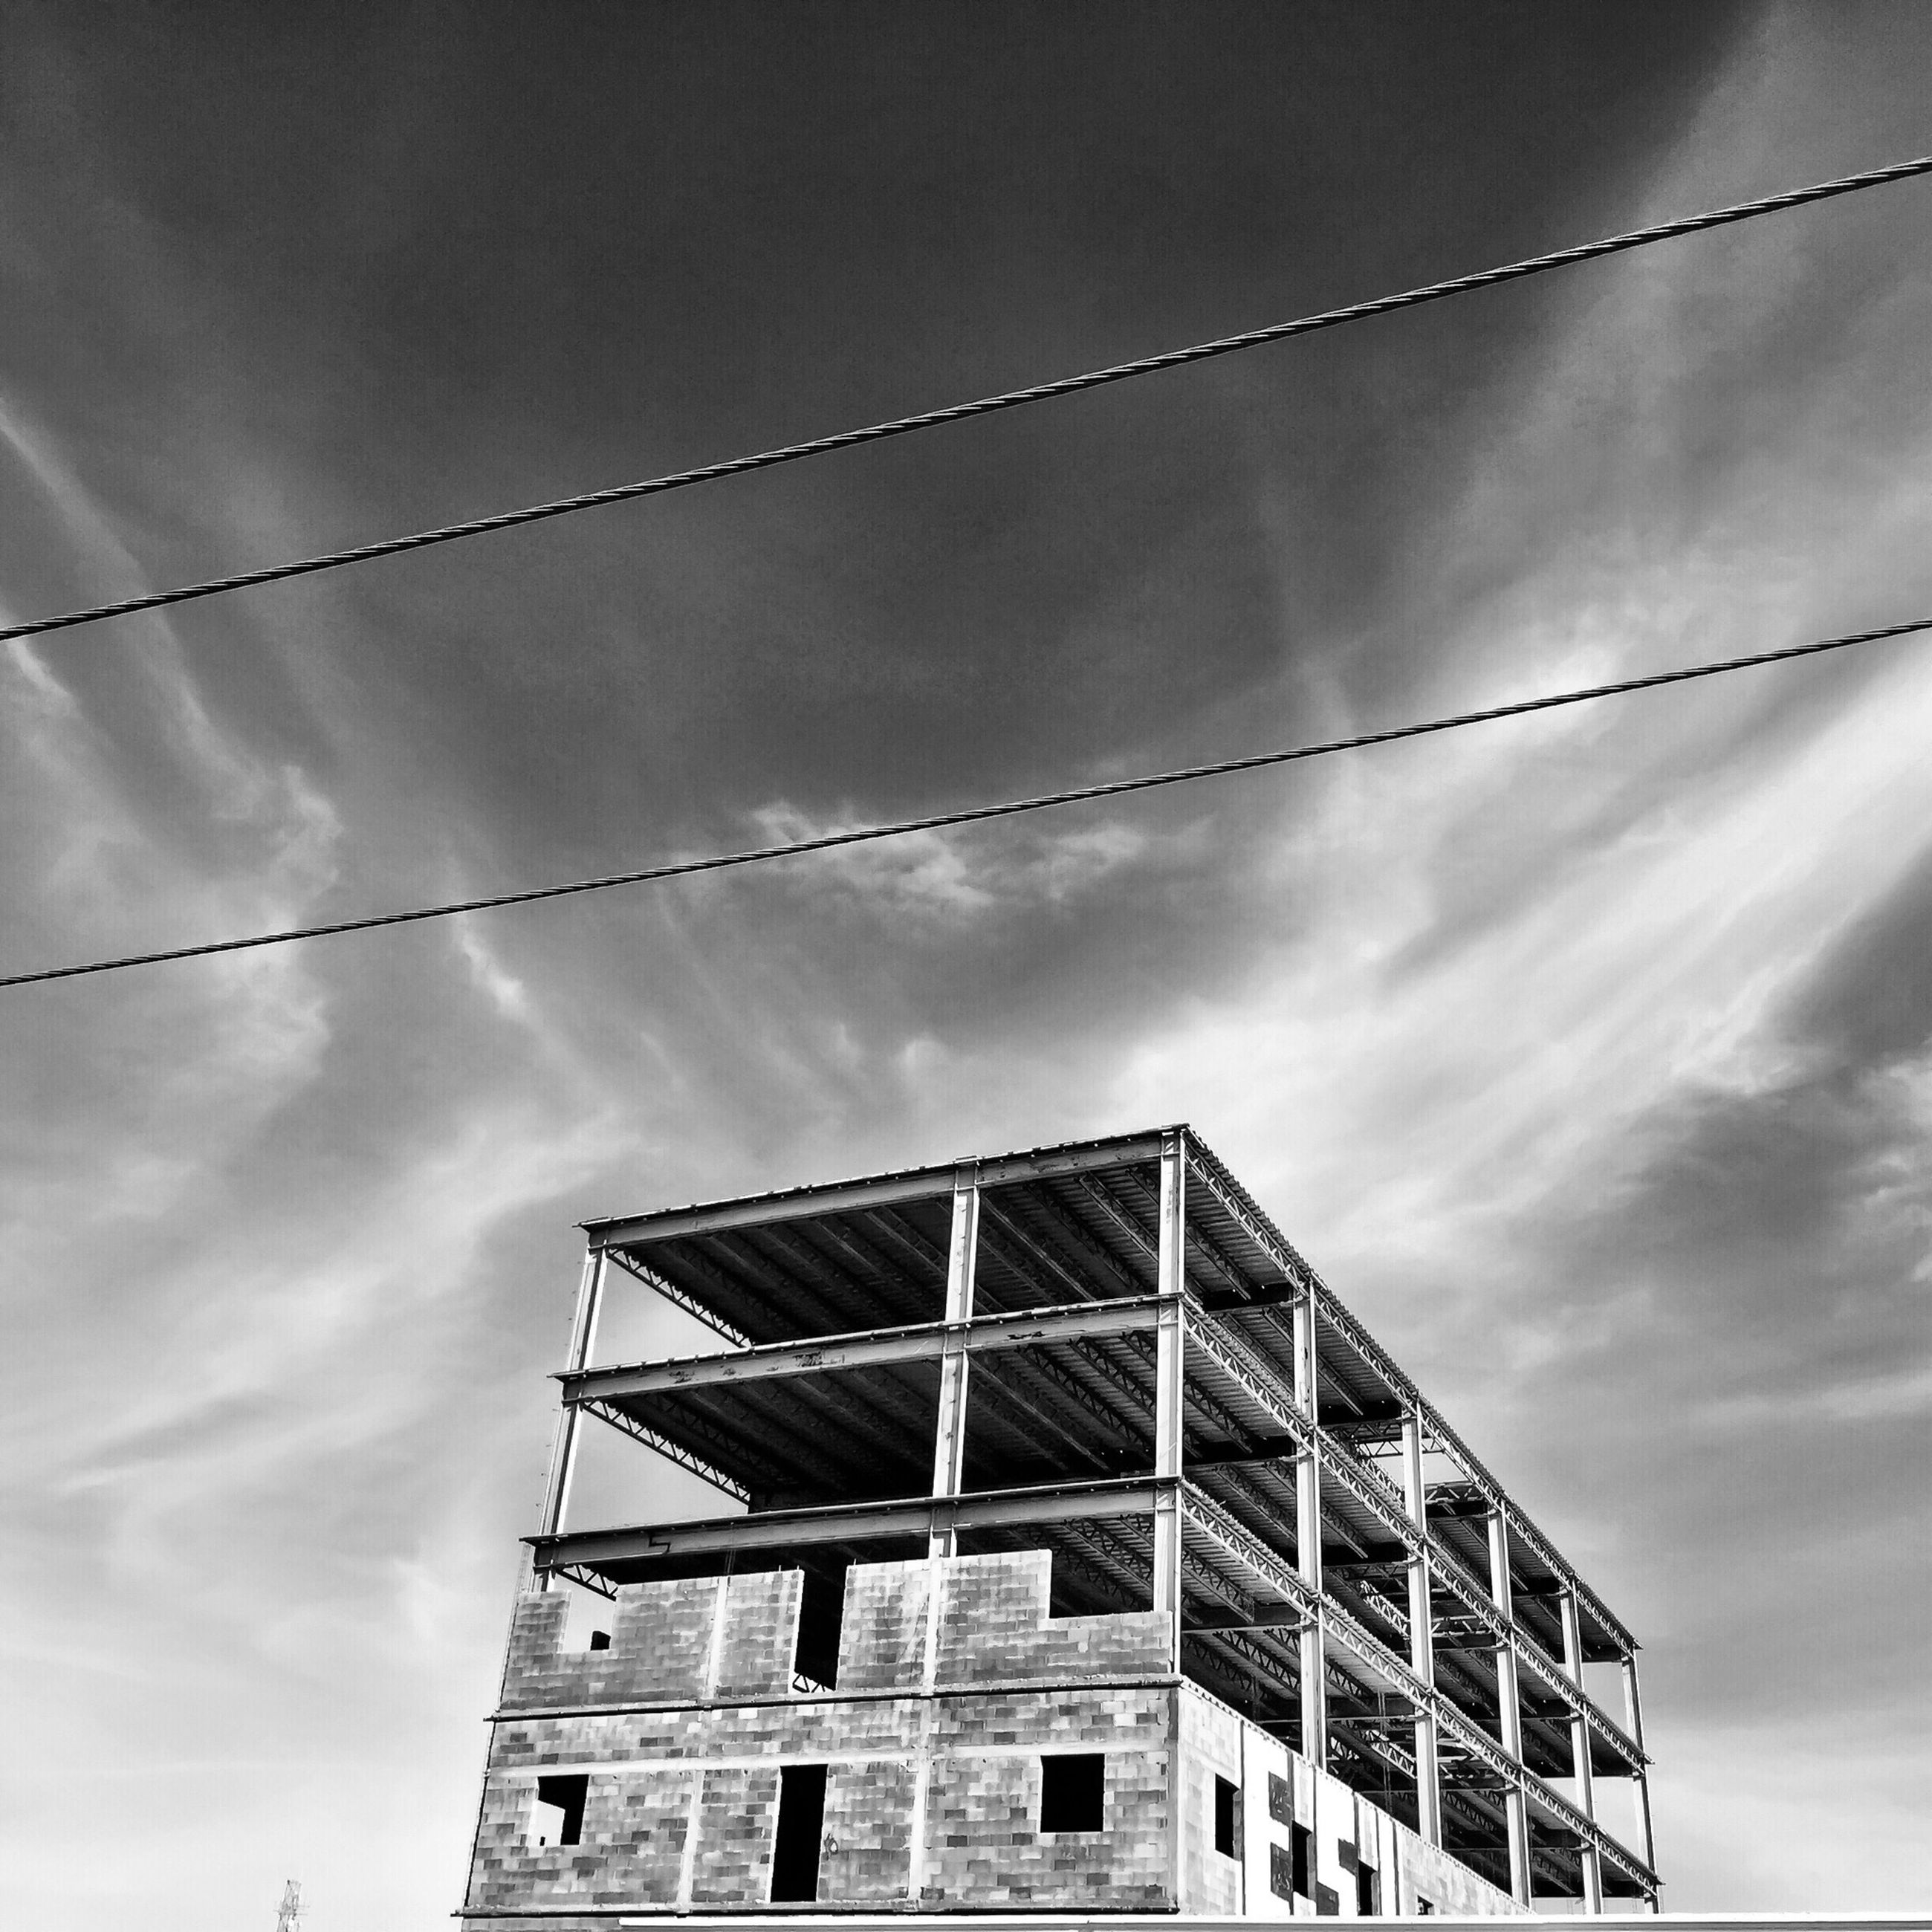 architecture, low angle view, building exterior, built structure, sky, cloud - sky, cloudy, building, cloud, residential structure, residential building, house, outdoors, day, window, no people, high section, cable, city, power line